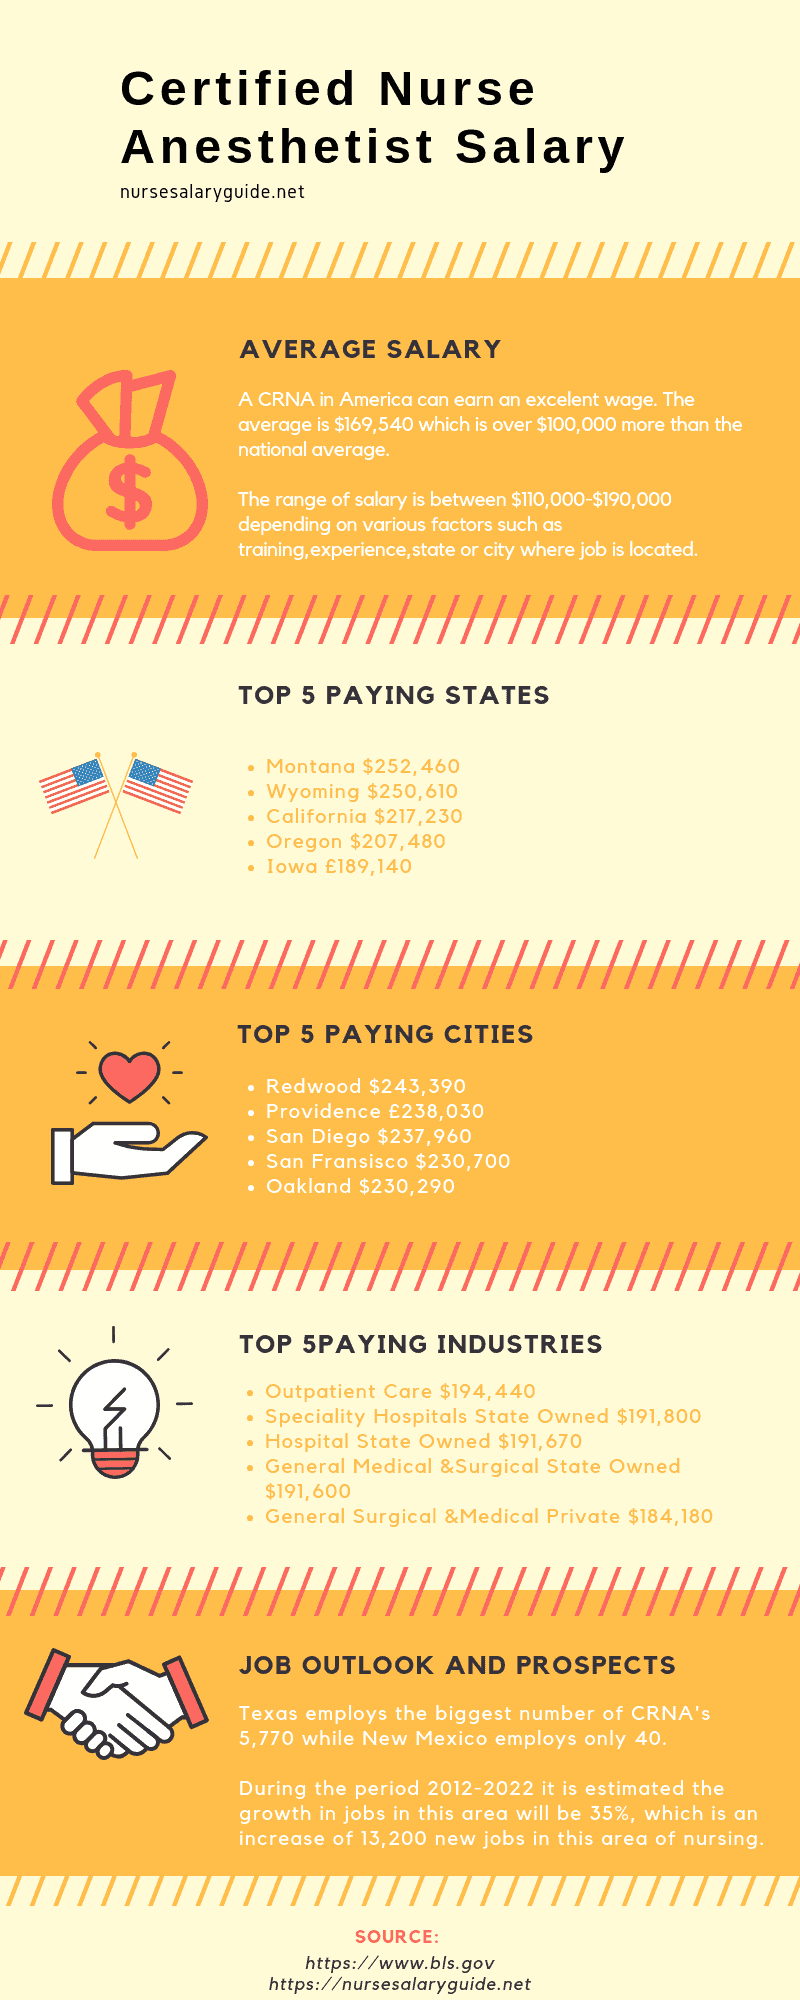 crna salary infographic